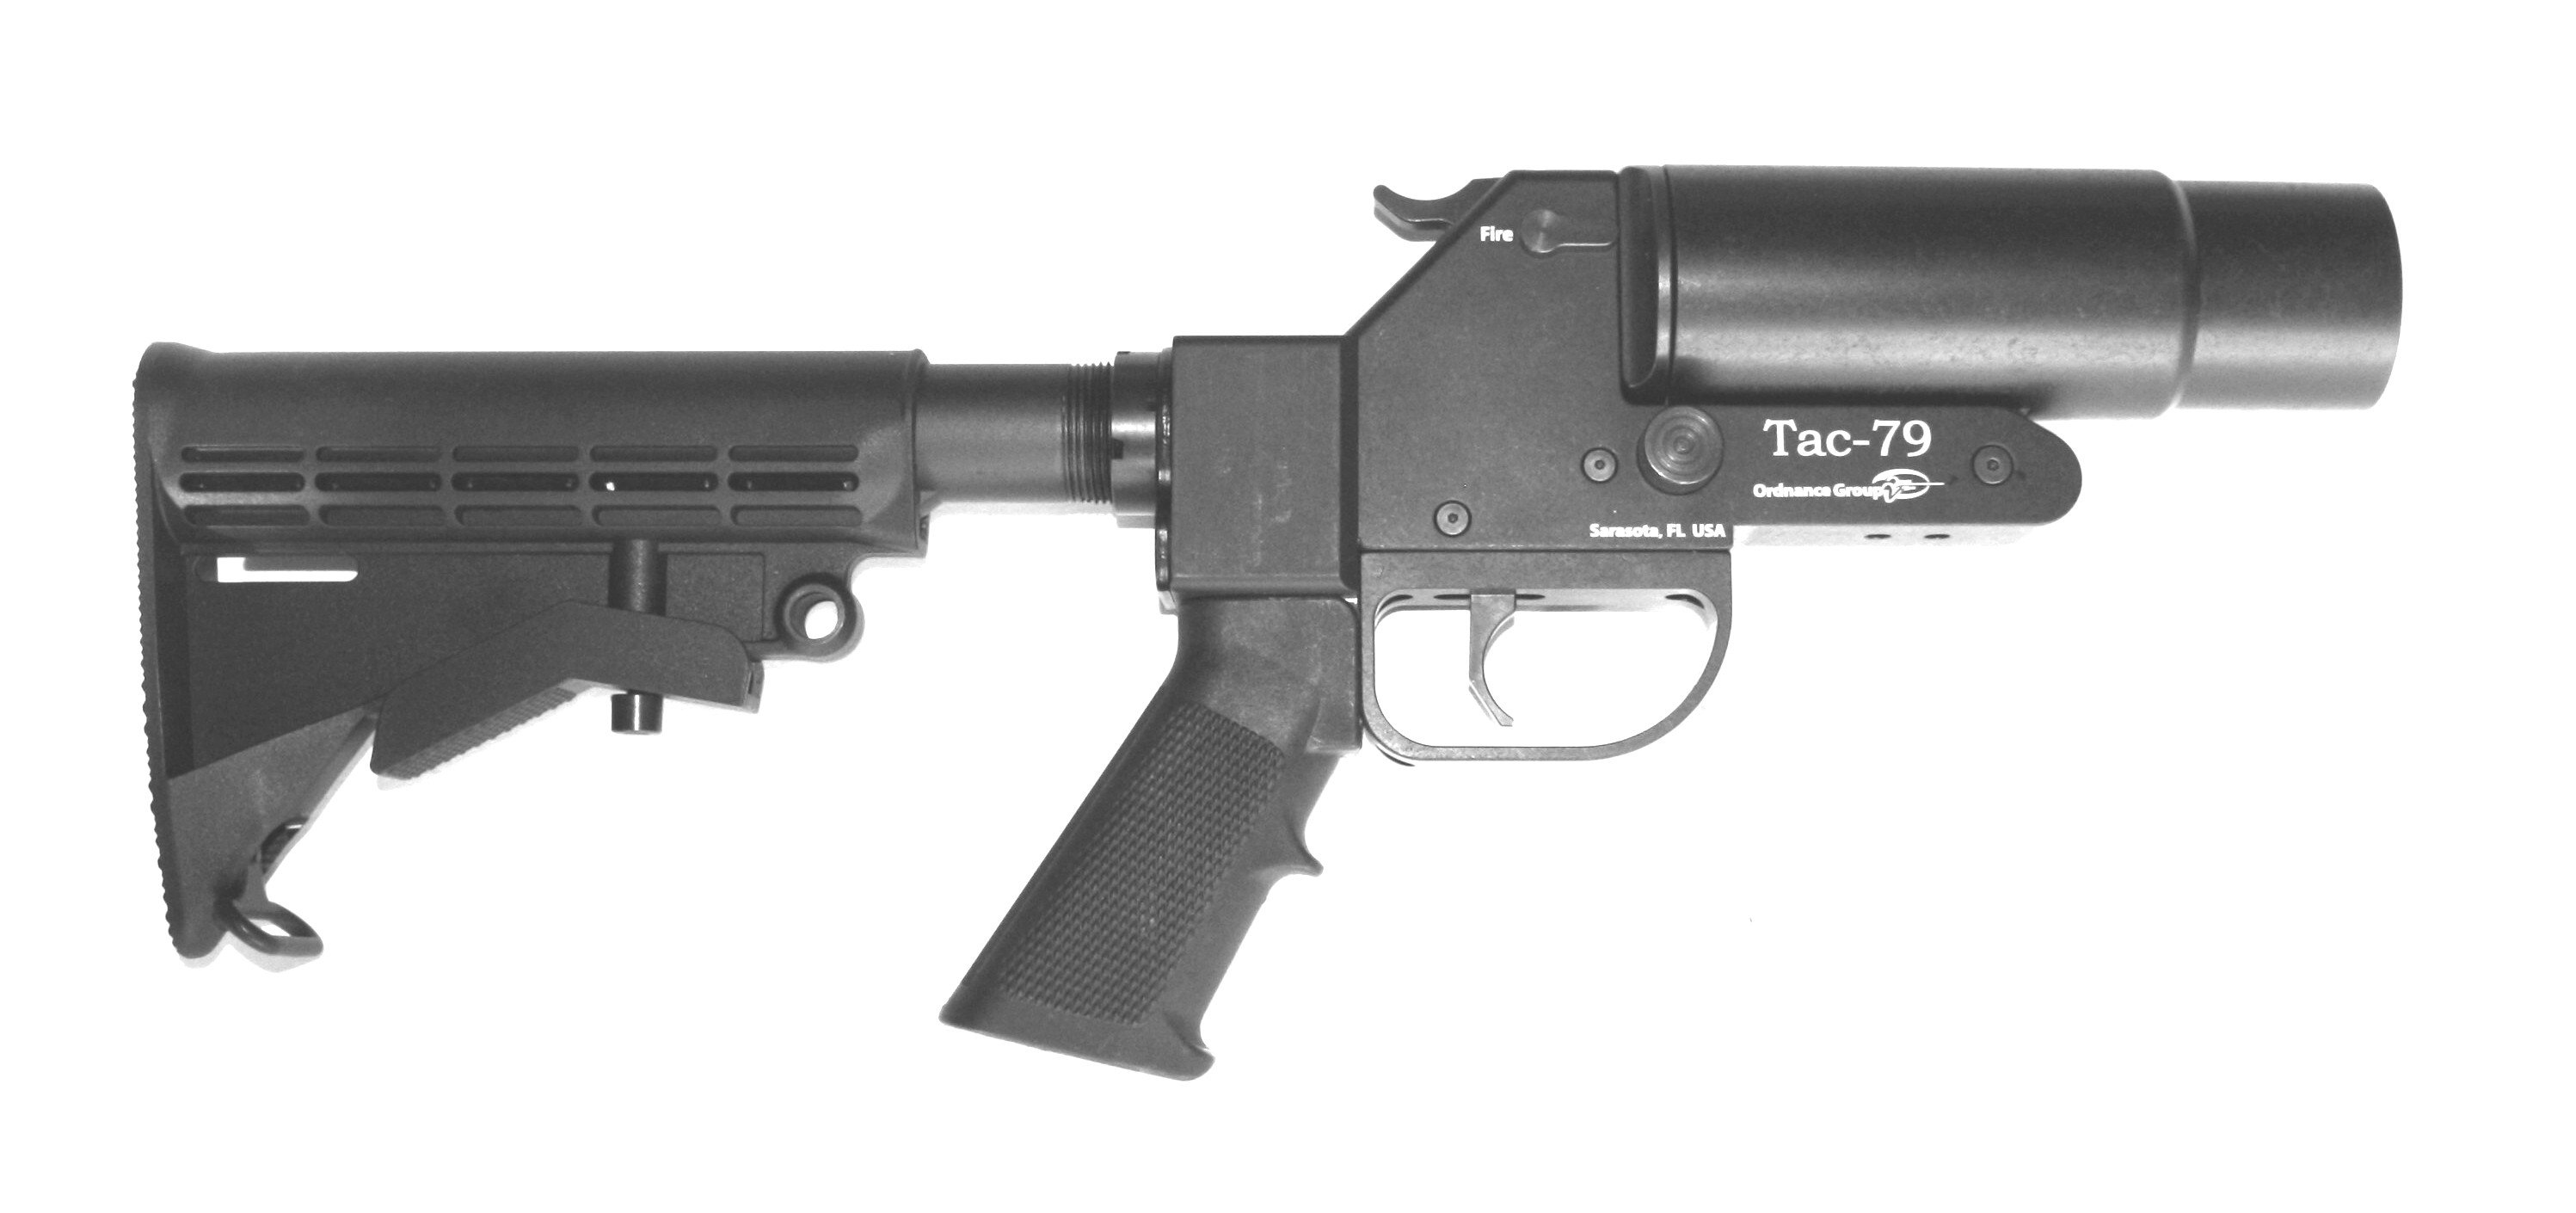 Tac-79 37mm Top Break Breacher